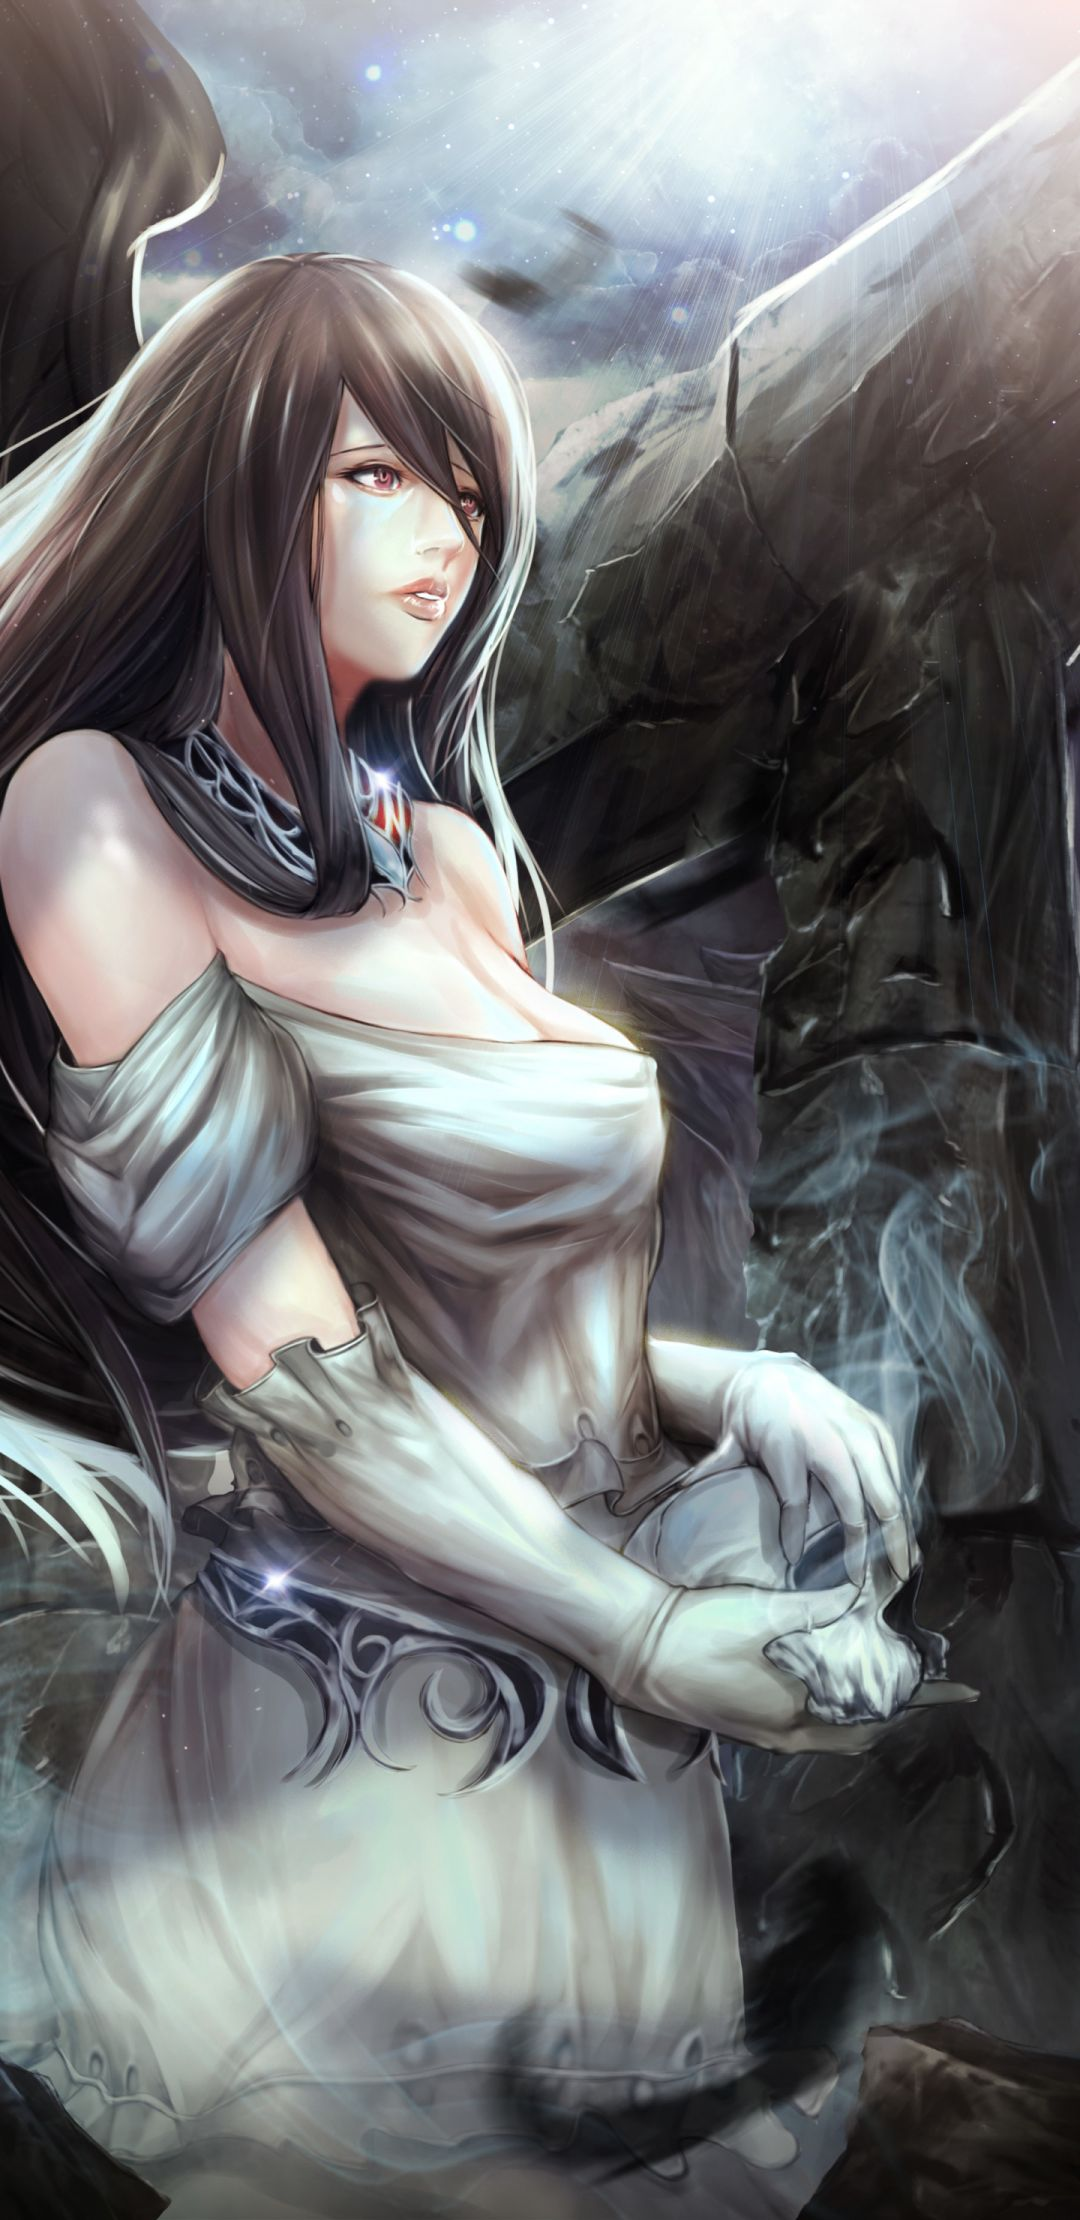 Anime Wallpaper Hd Albedo Overlord Wallpaper